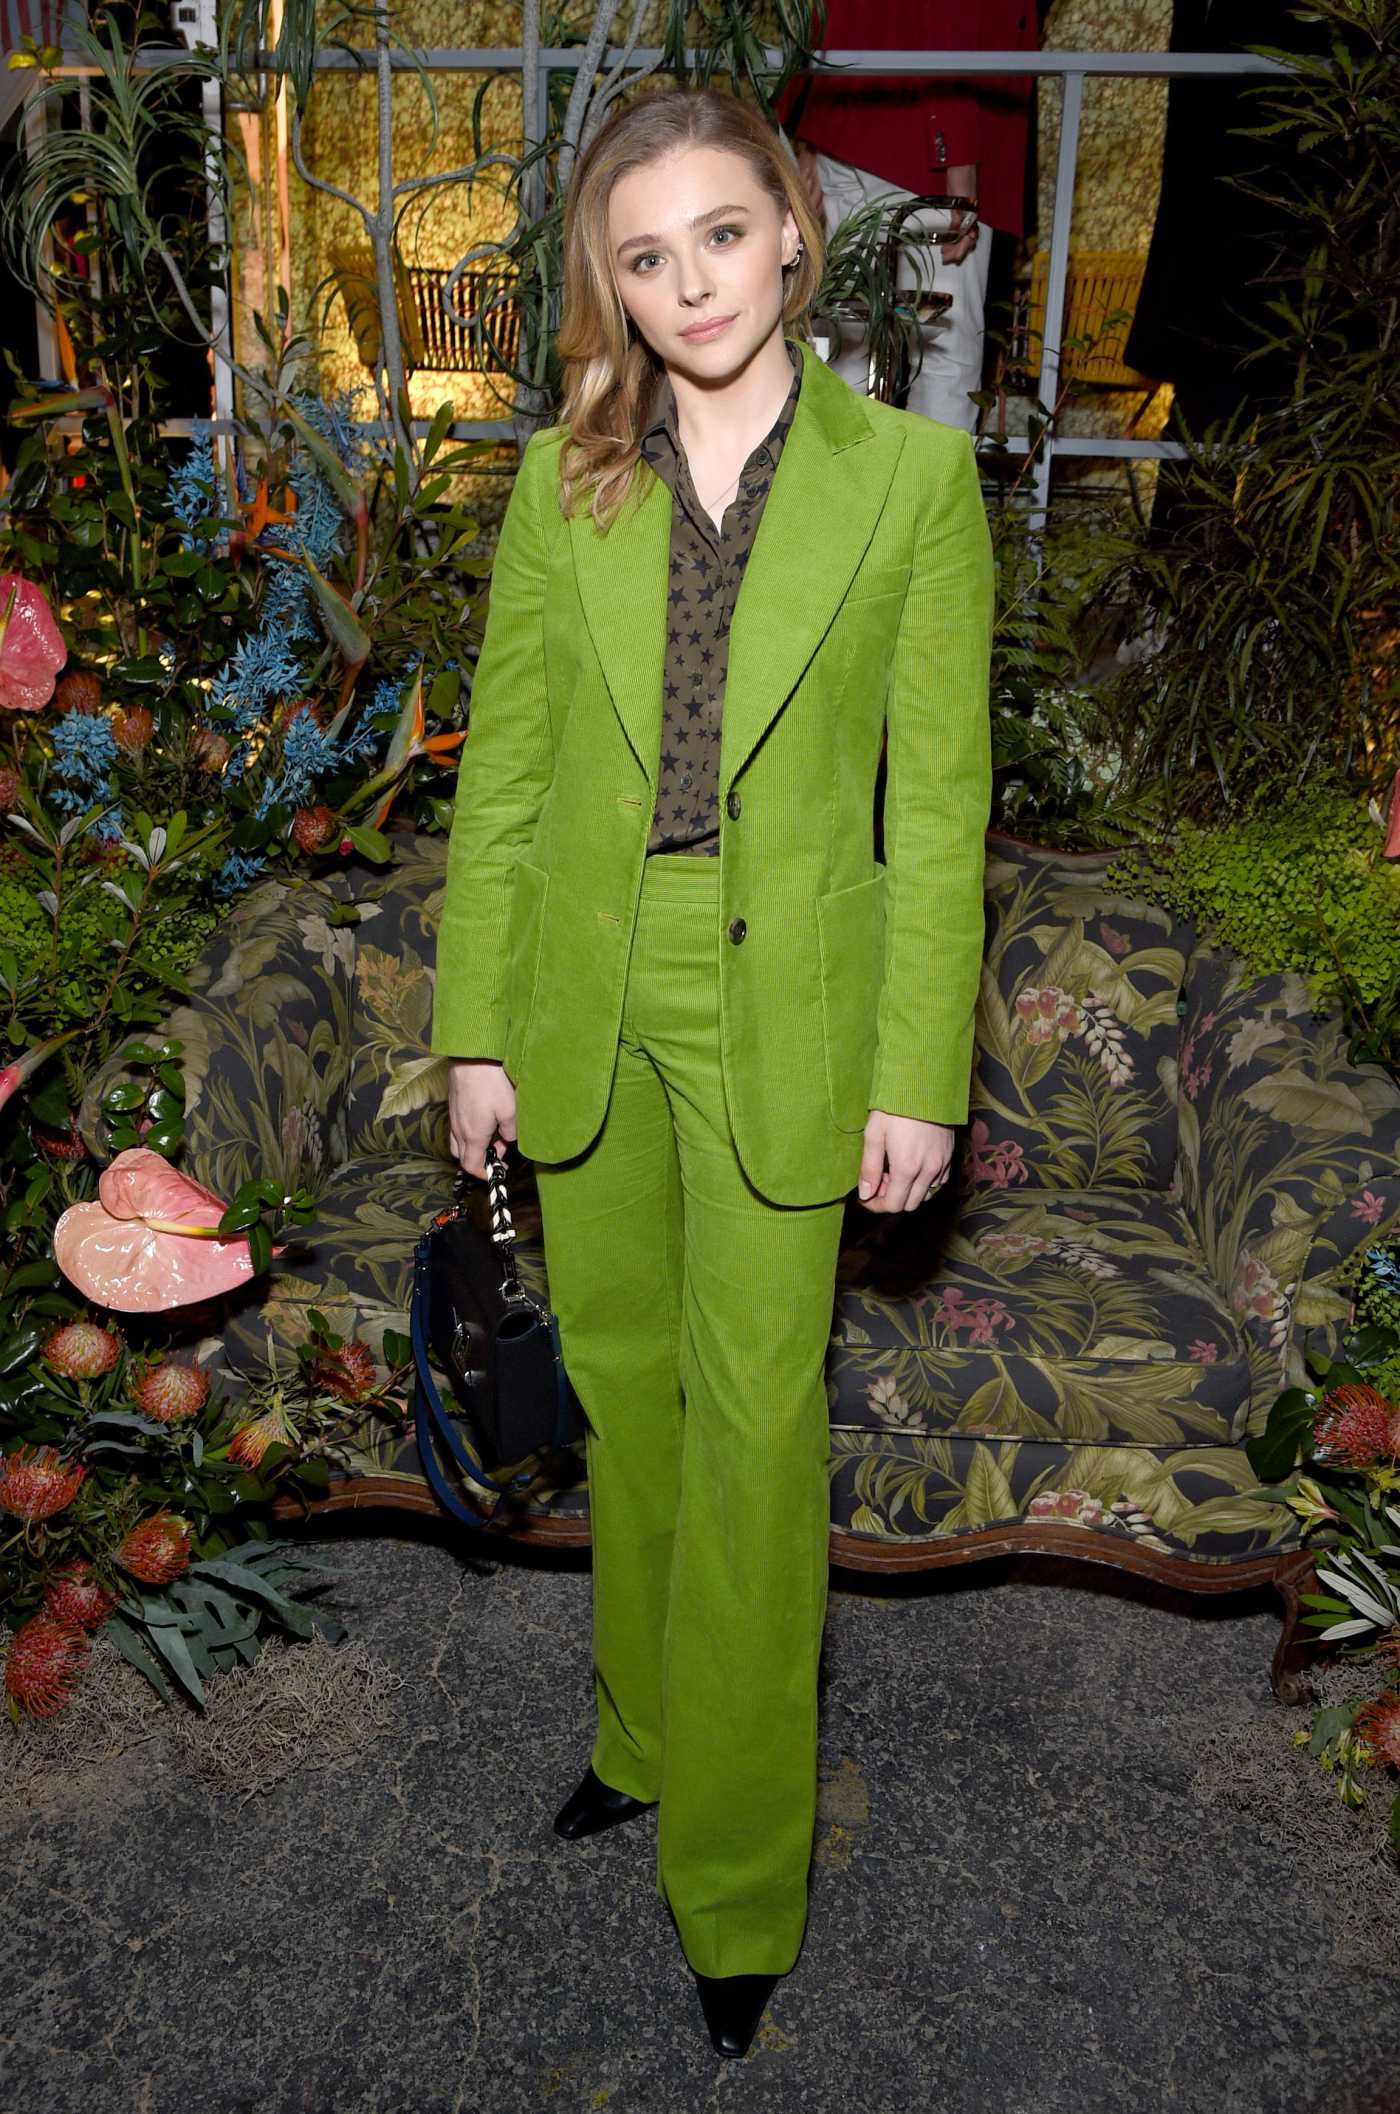 Chloe Moretz Attends the Birkenstock 1774 Collection Matchesfashion Launch Party in LA 02/13/2020